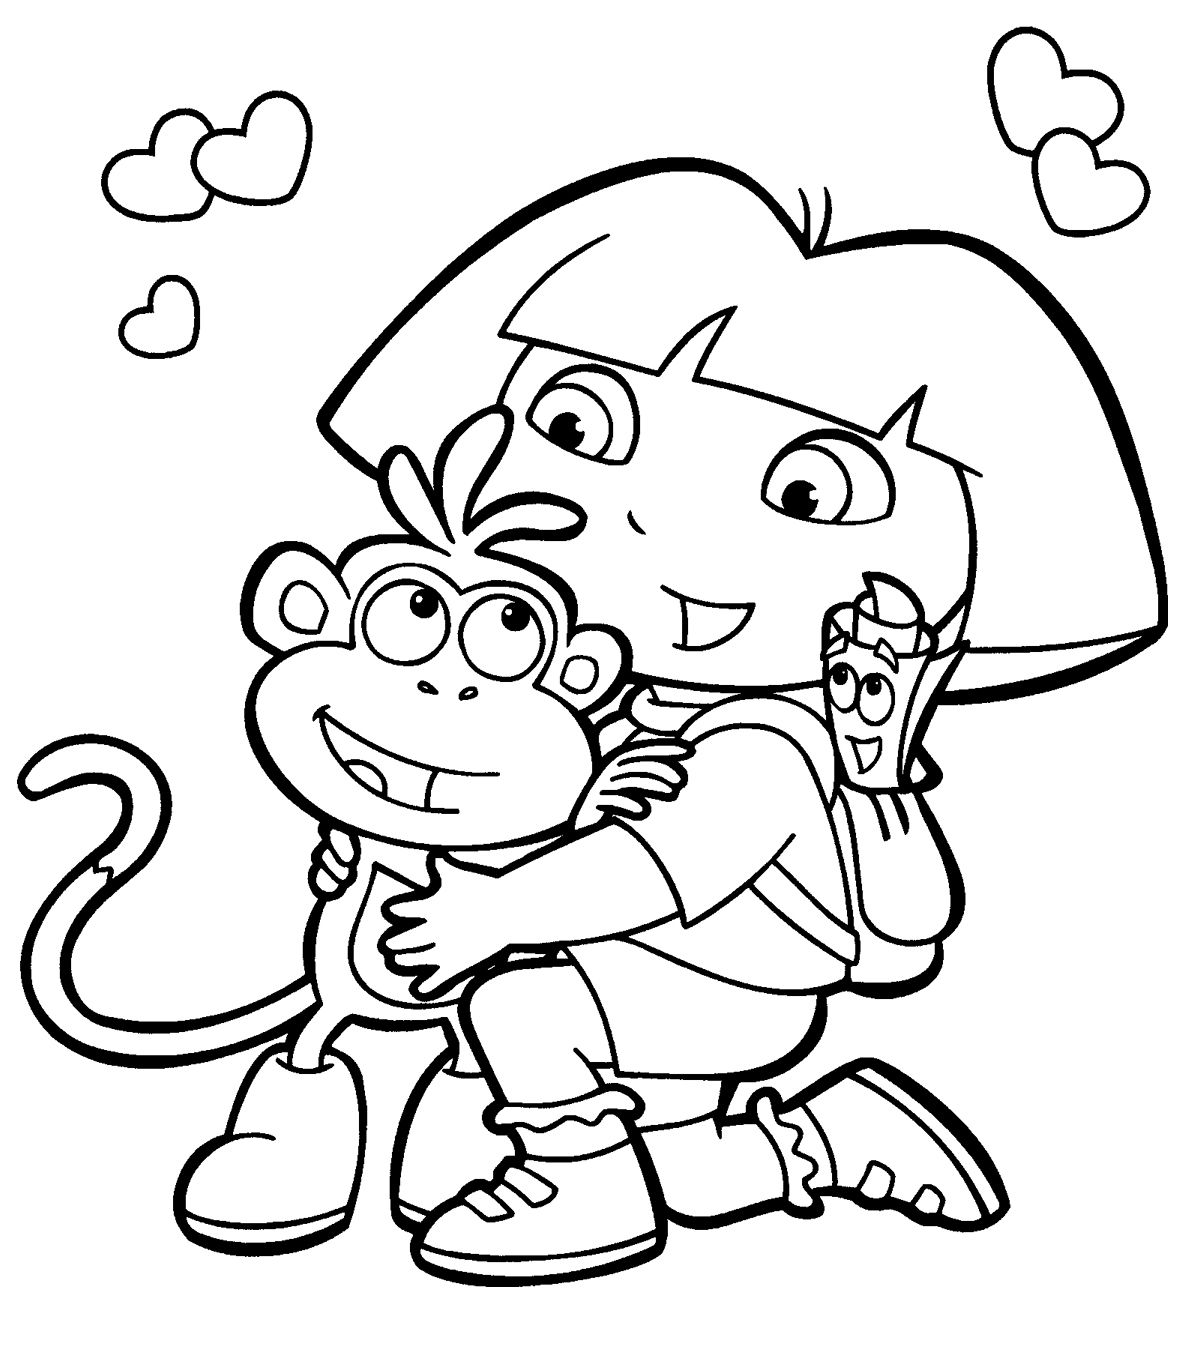 coloring book pages free nickjrs dora the explorer coloring book printables